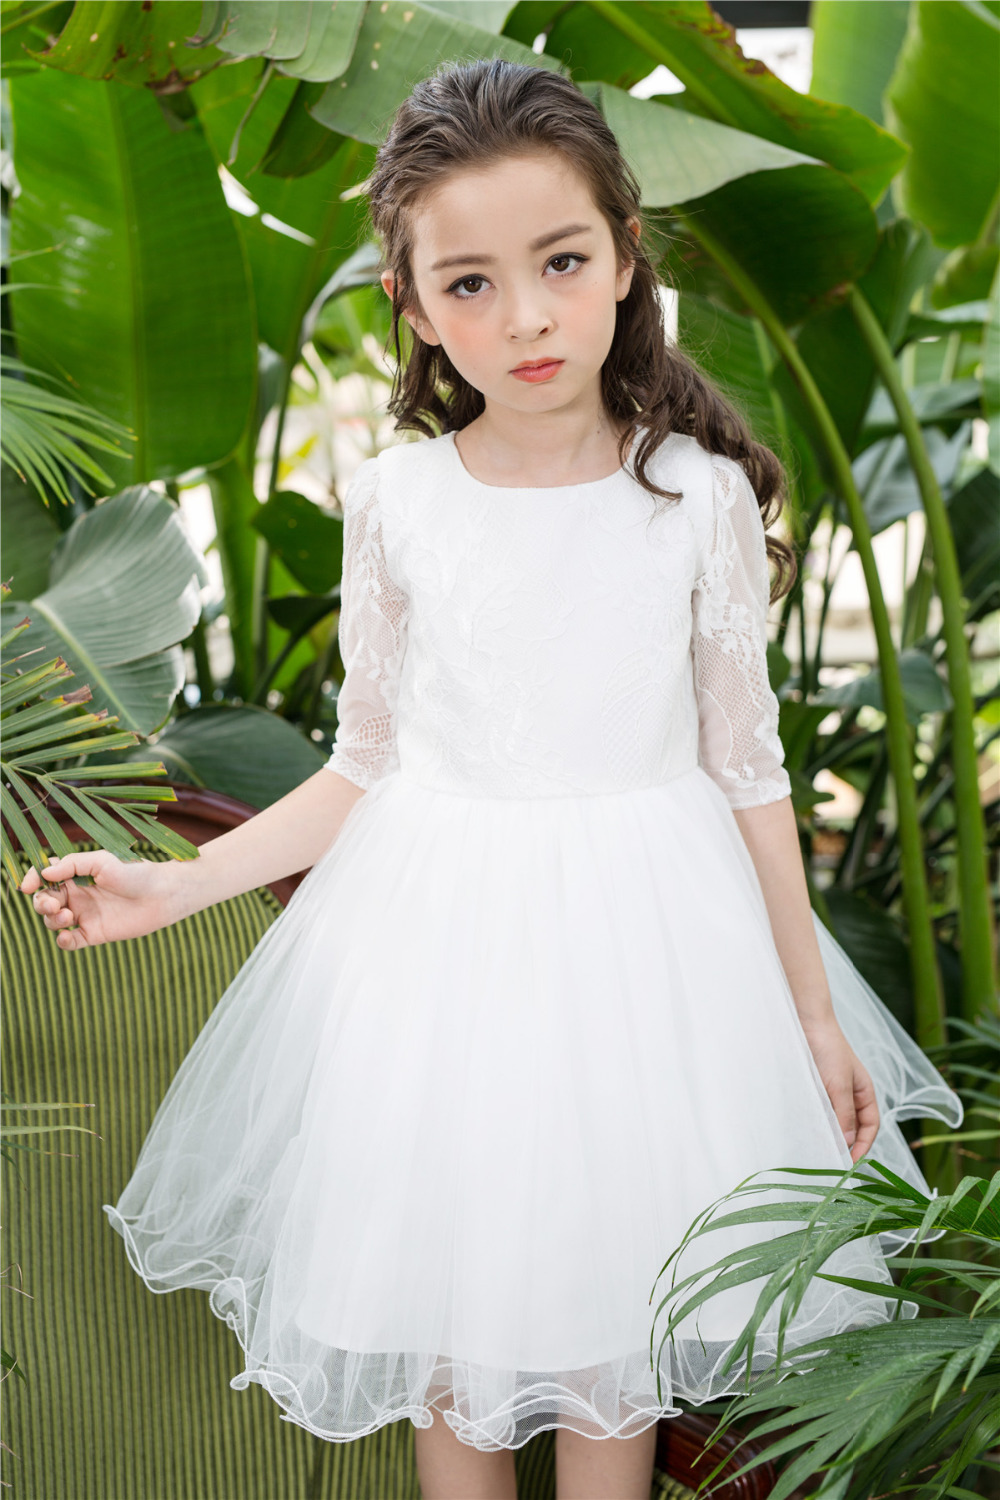 A-Line Princess Style Dress For First Communion Tulle Flower Girl Dresses For Weddding Lace Long Sleeve Girls Pageant Dresses недорго, оригинальная цена